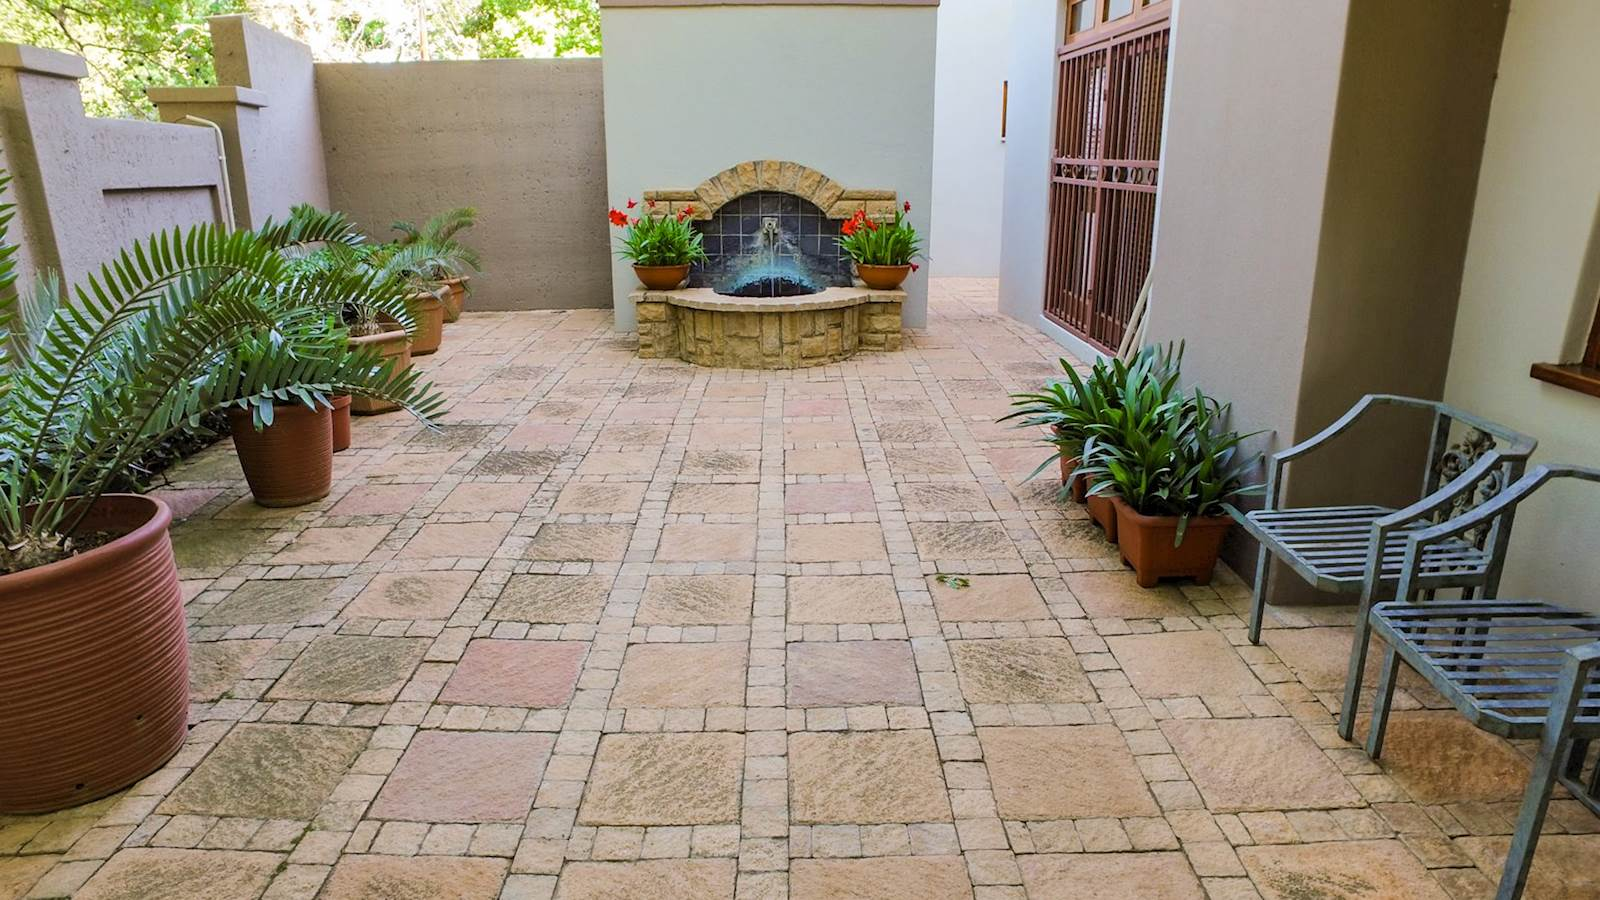 4 Bedroom House for sale in Waterkloof Ridge ENT0005736 : photo#2